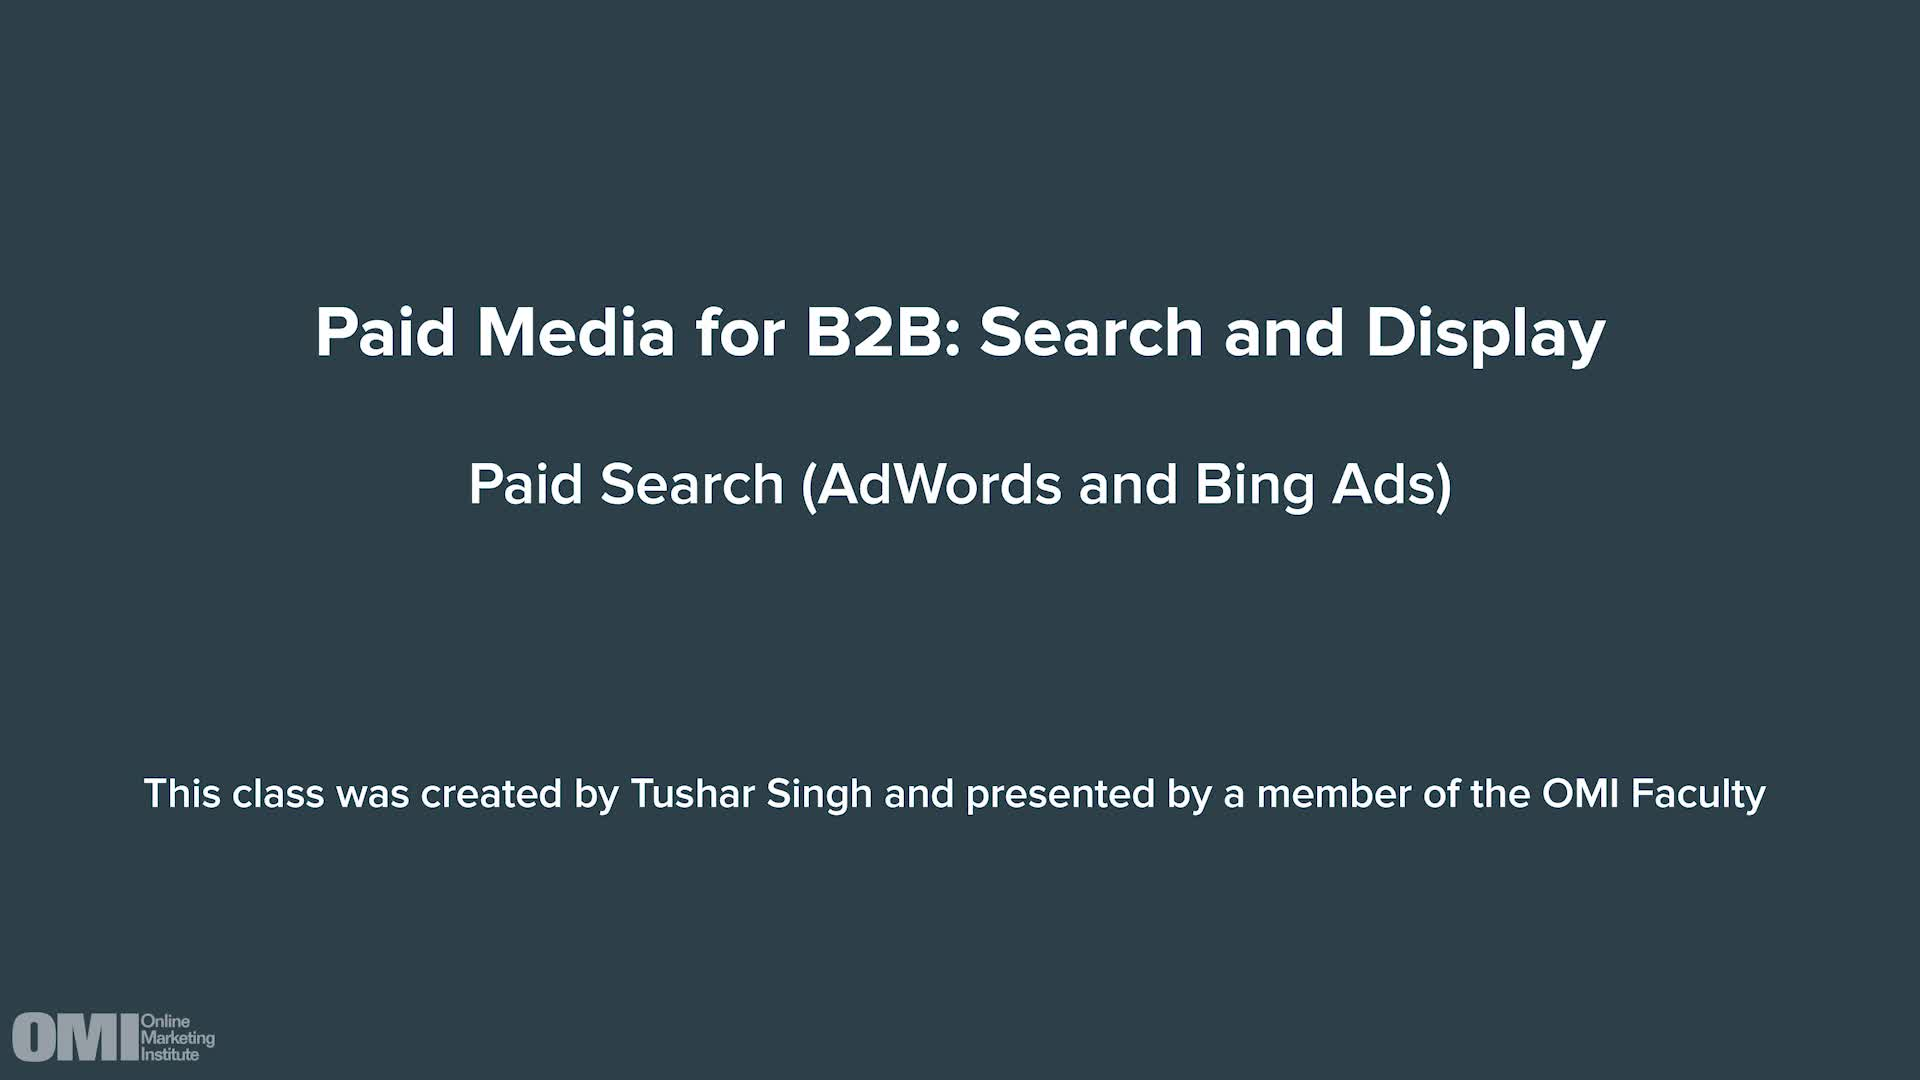 Paid Media for B2B: Search and Display